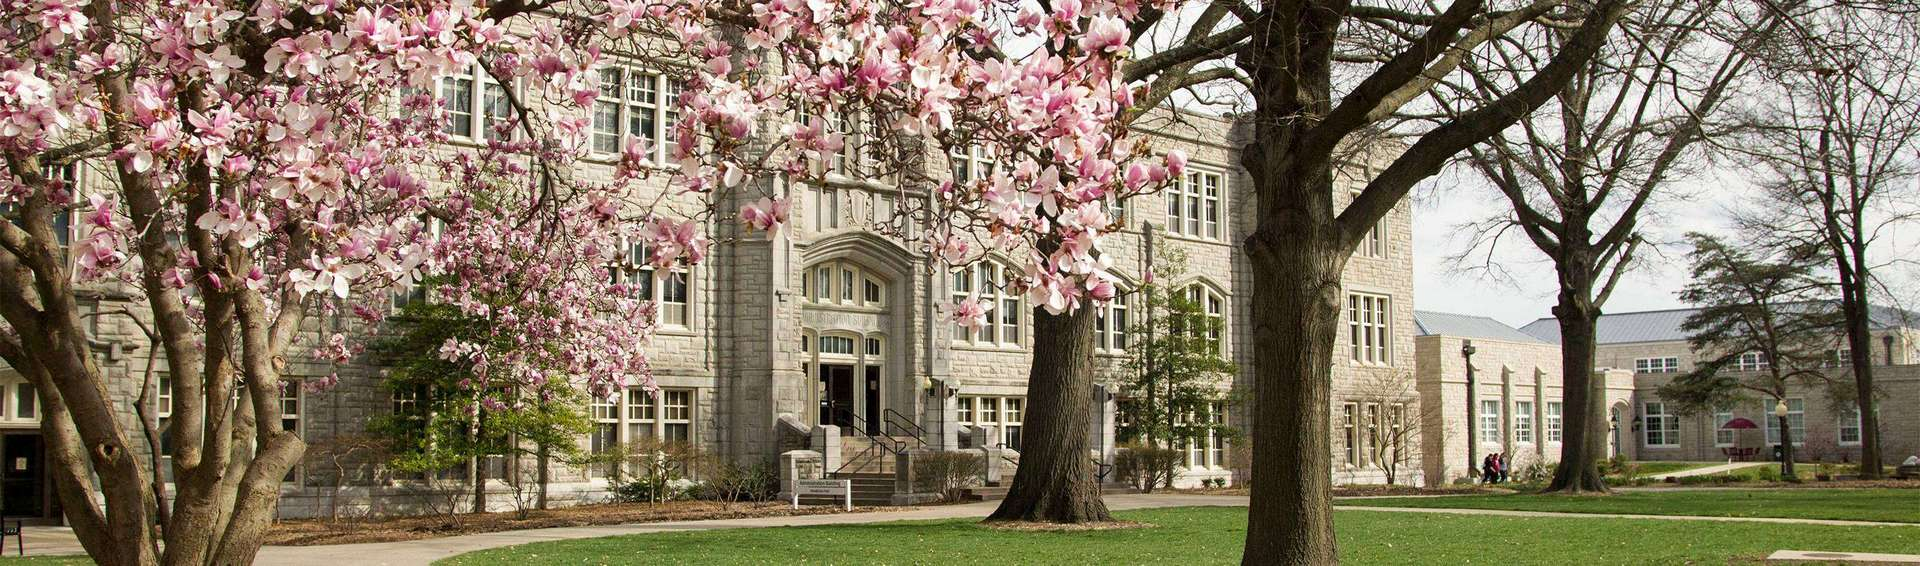 Administration Building in Spring